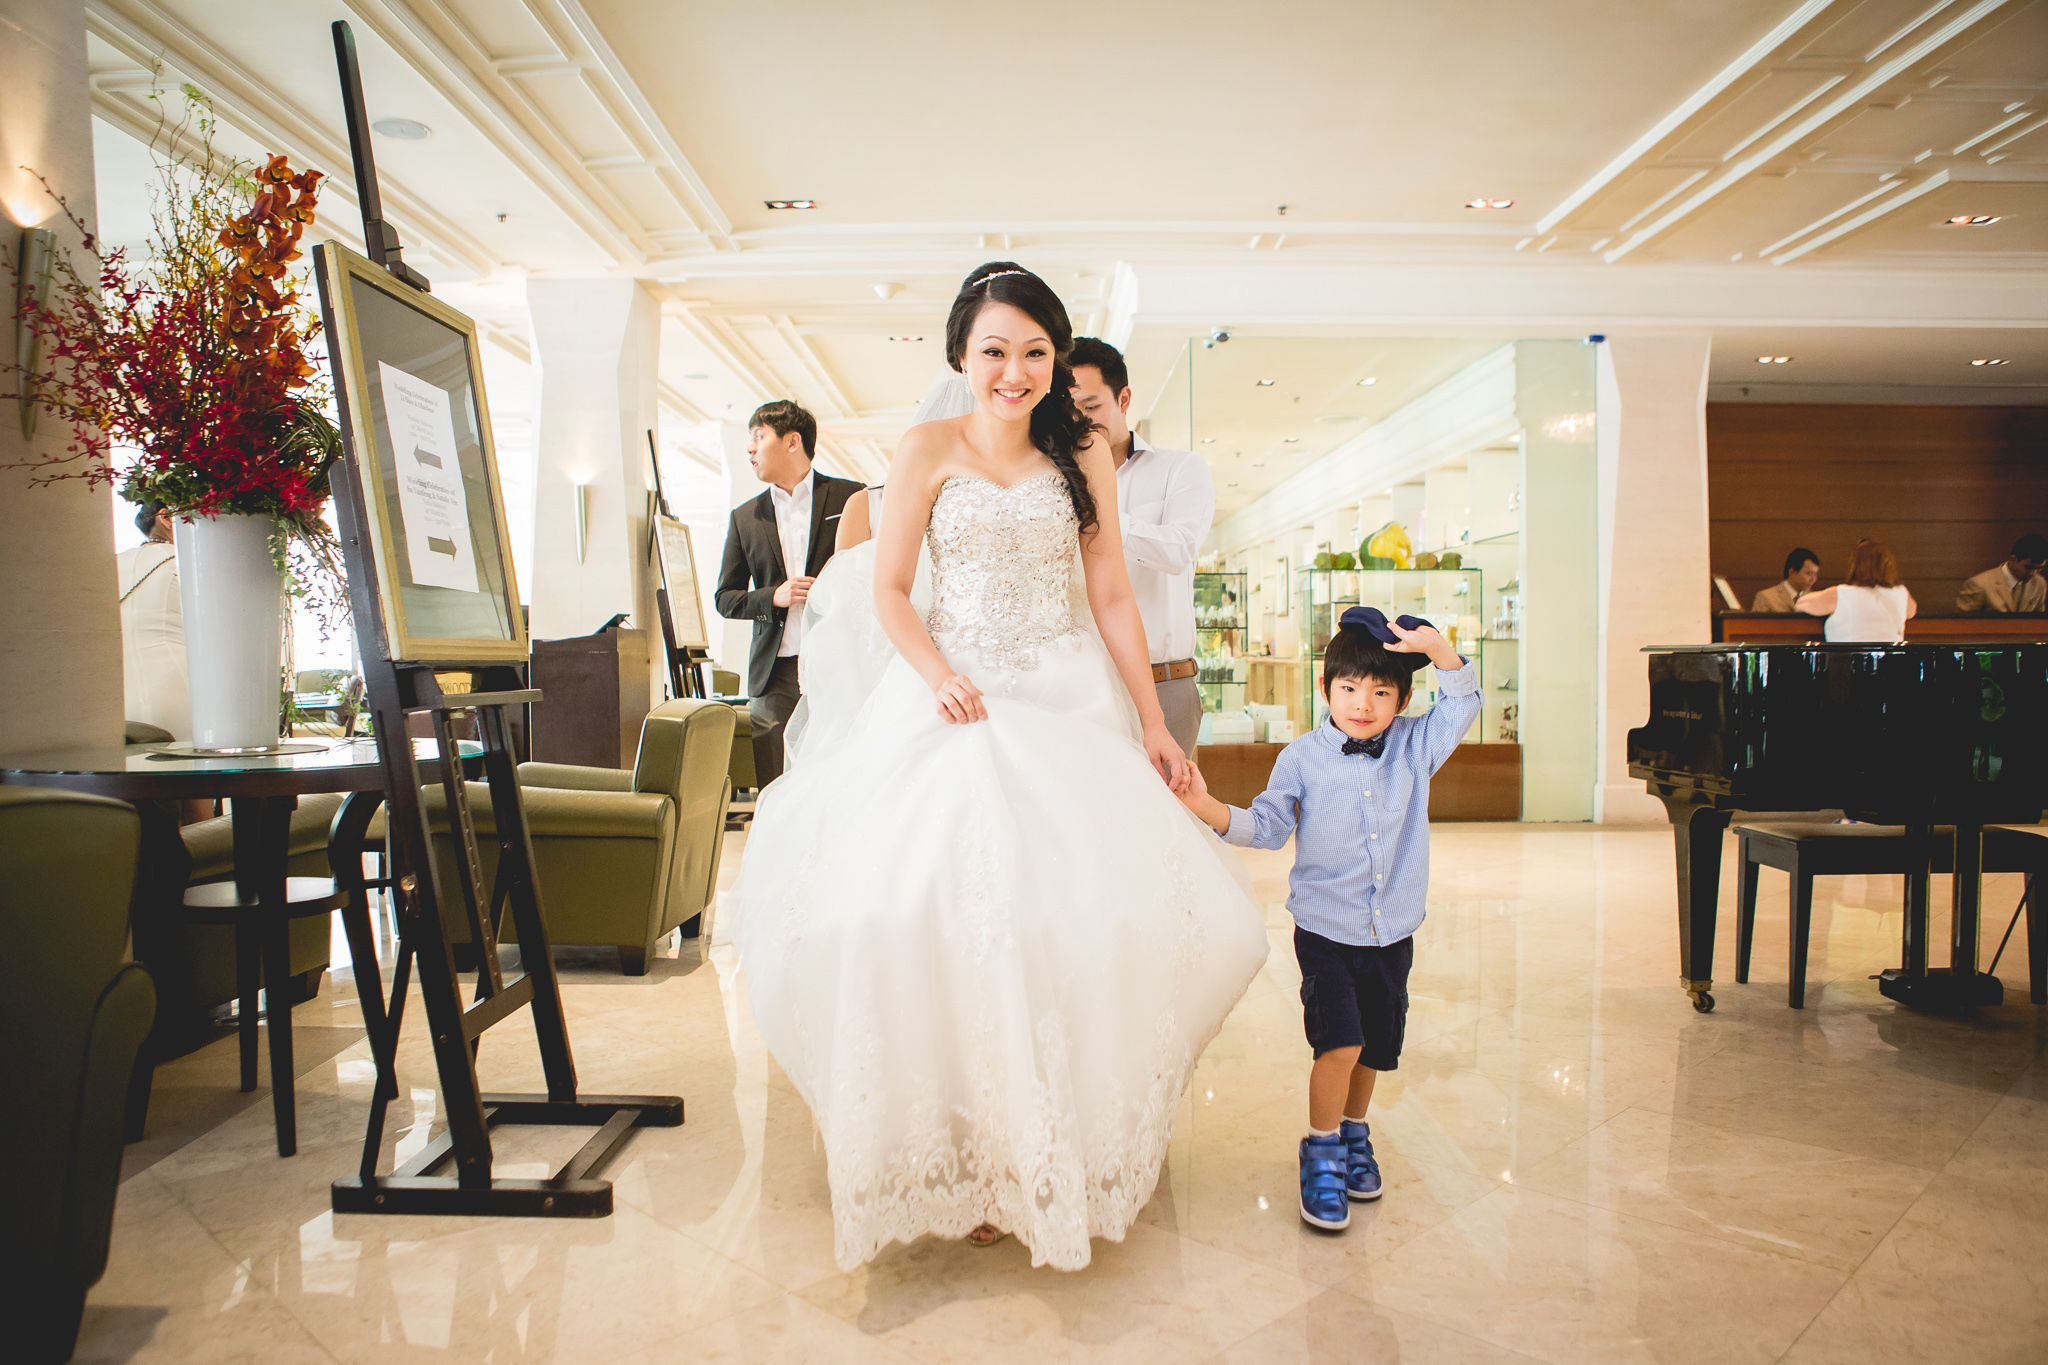 Yunfeng & Natalie Wedding Day Selects (Resized for sharing) -040.jpg